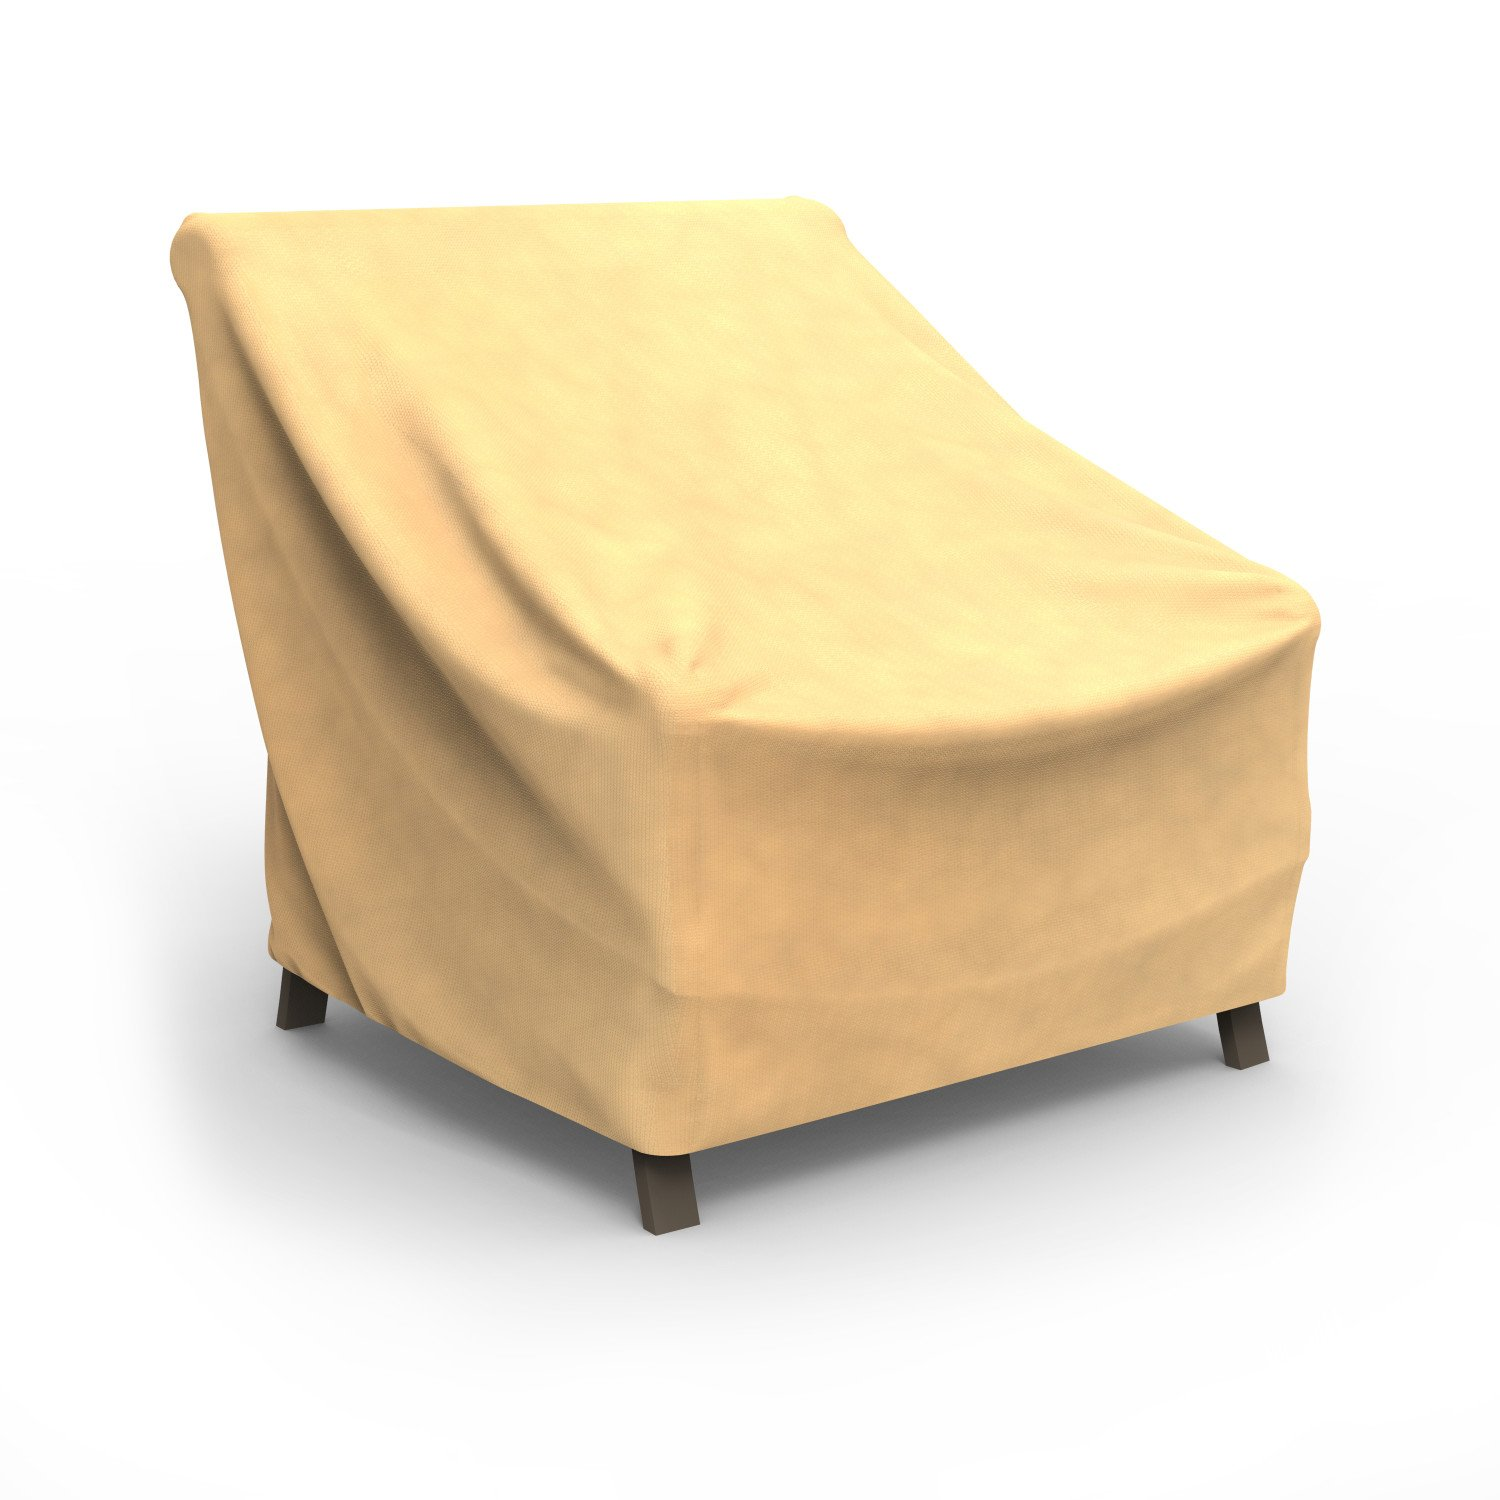 Budge All-Seasons Patio Chair Cover, Extra Large (Tan) by Budge